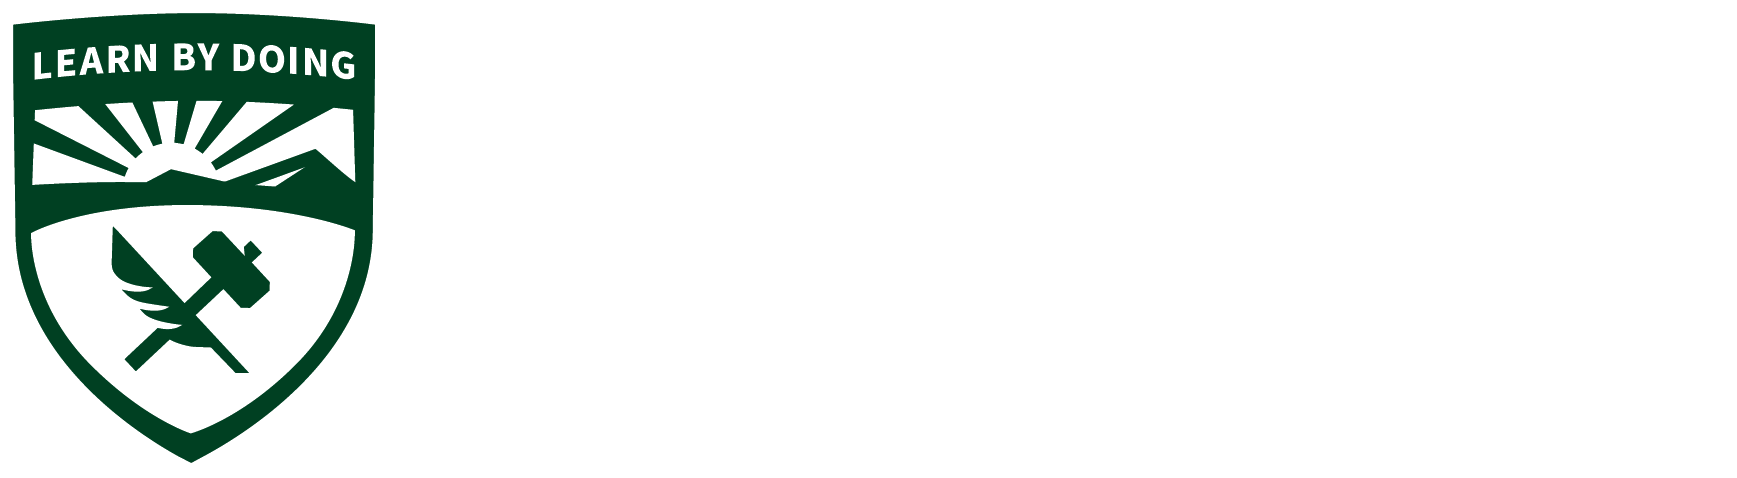 Economics Area – Orfalea College of Business